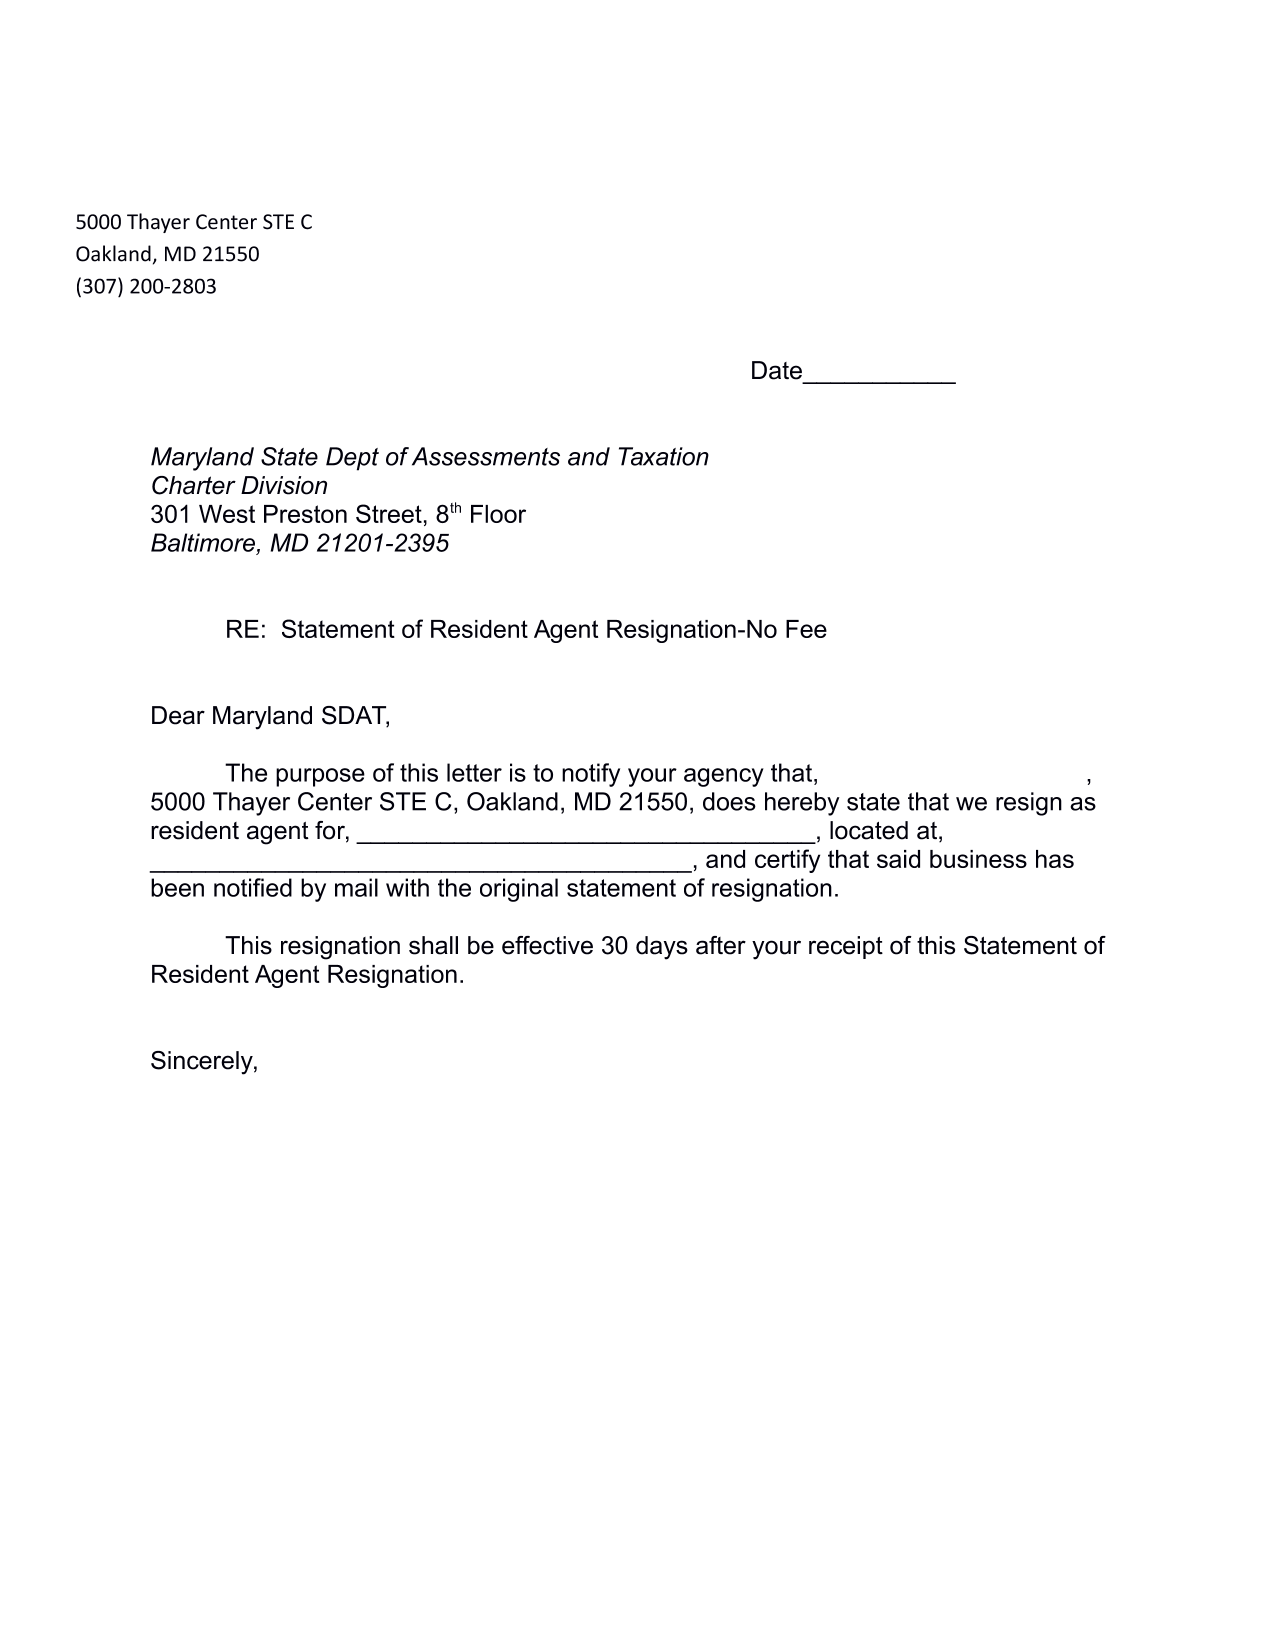 maryland-statement-of-resignation-of-registered-agent